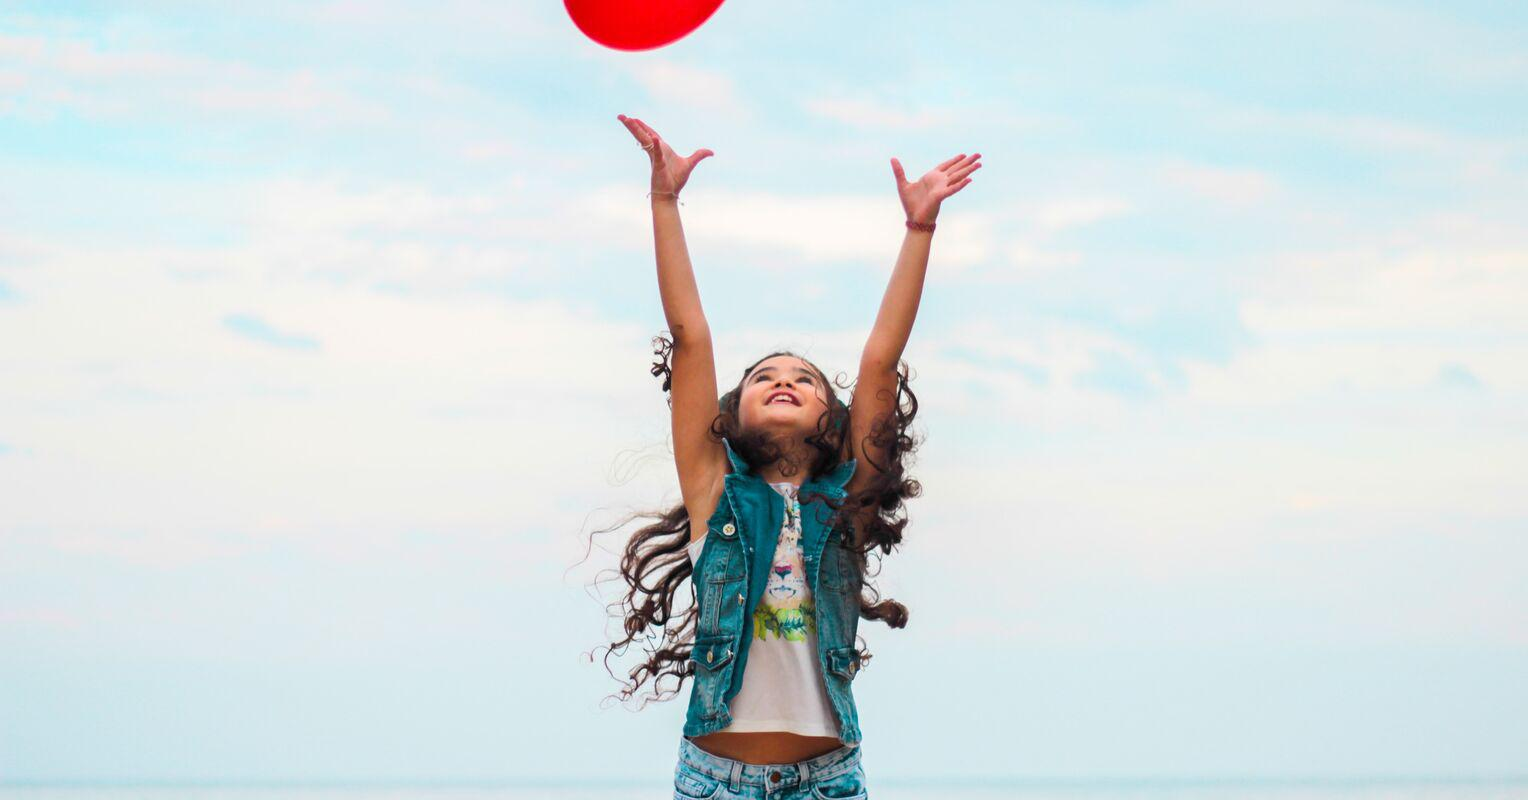 A Guide to Finding Joy in the Little Things